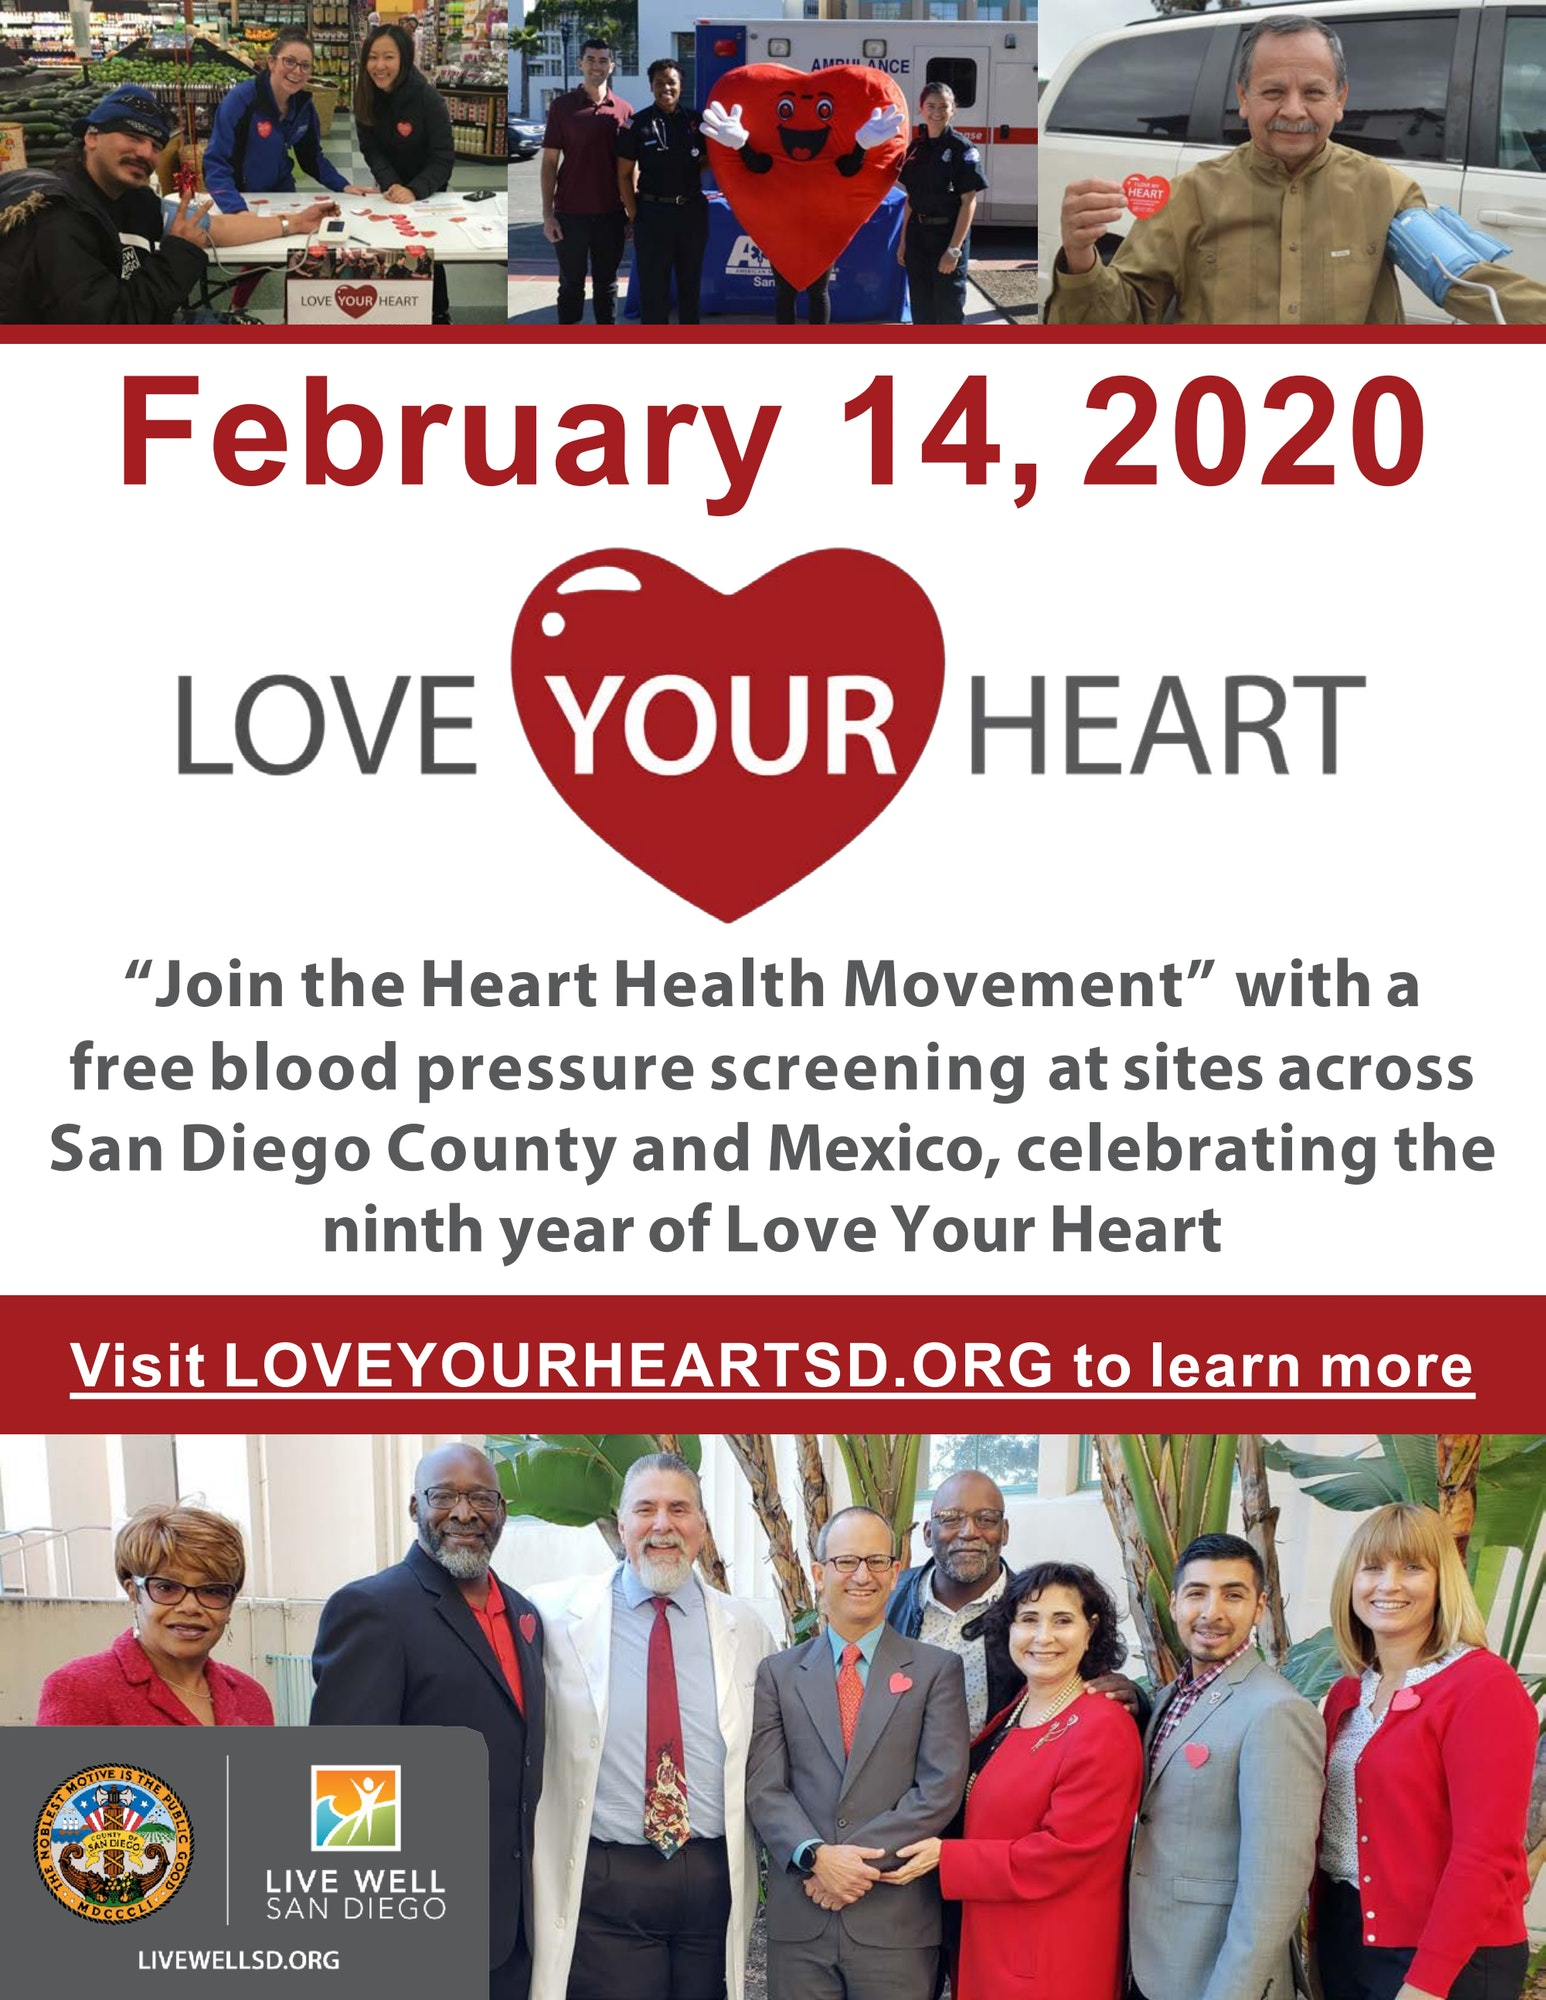 Announcement of Feb 14, 2020 Live Well San Diego Love Your Heart Event. visit loveyourheartsd.org for more information